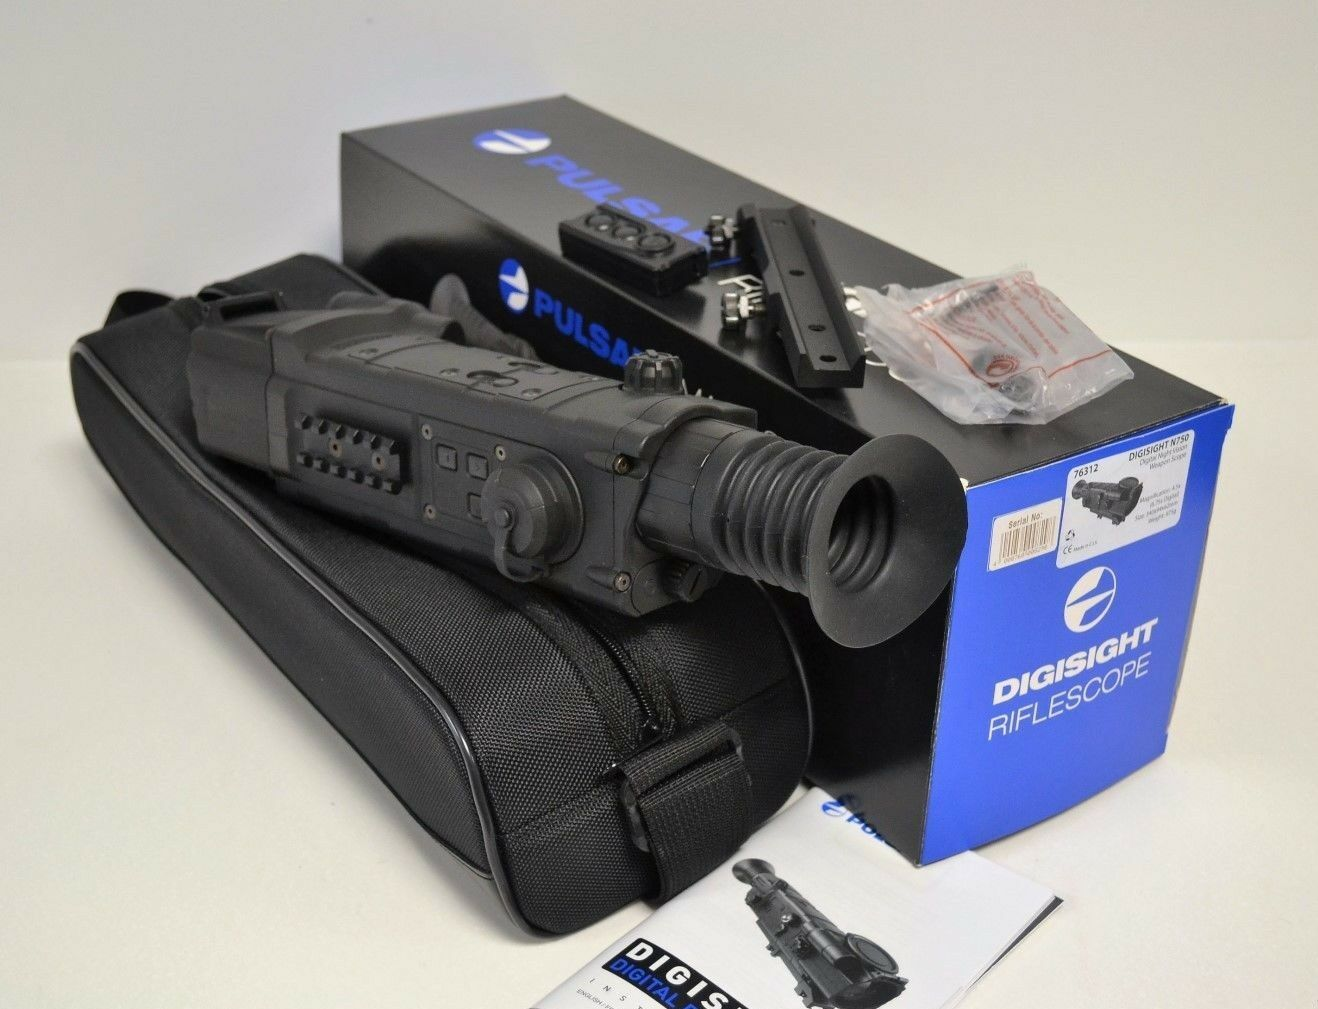 PULSAR Digisight N750 Digital Night Vision Scope